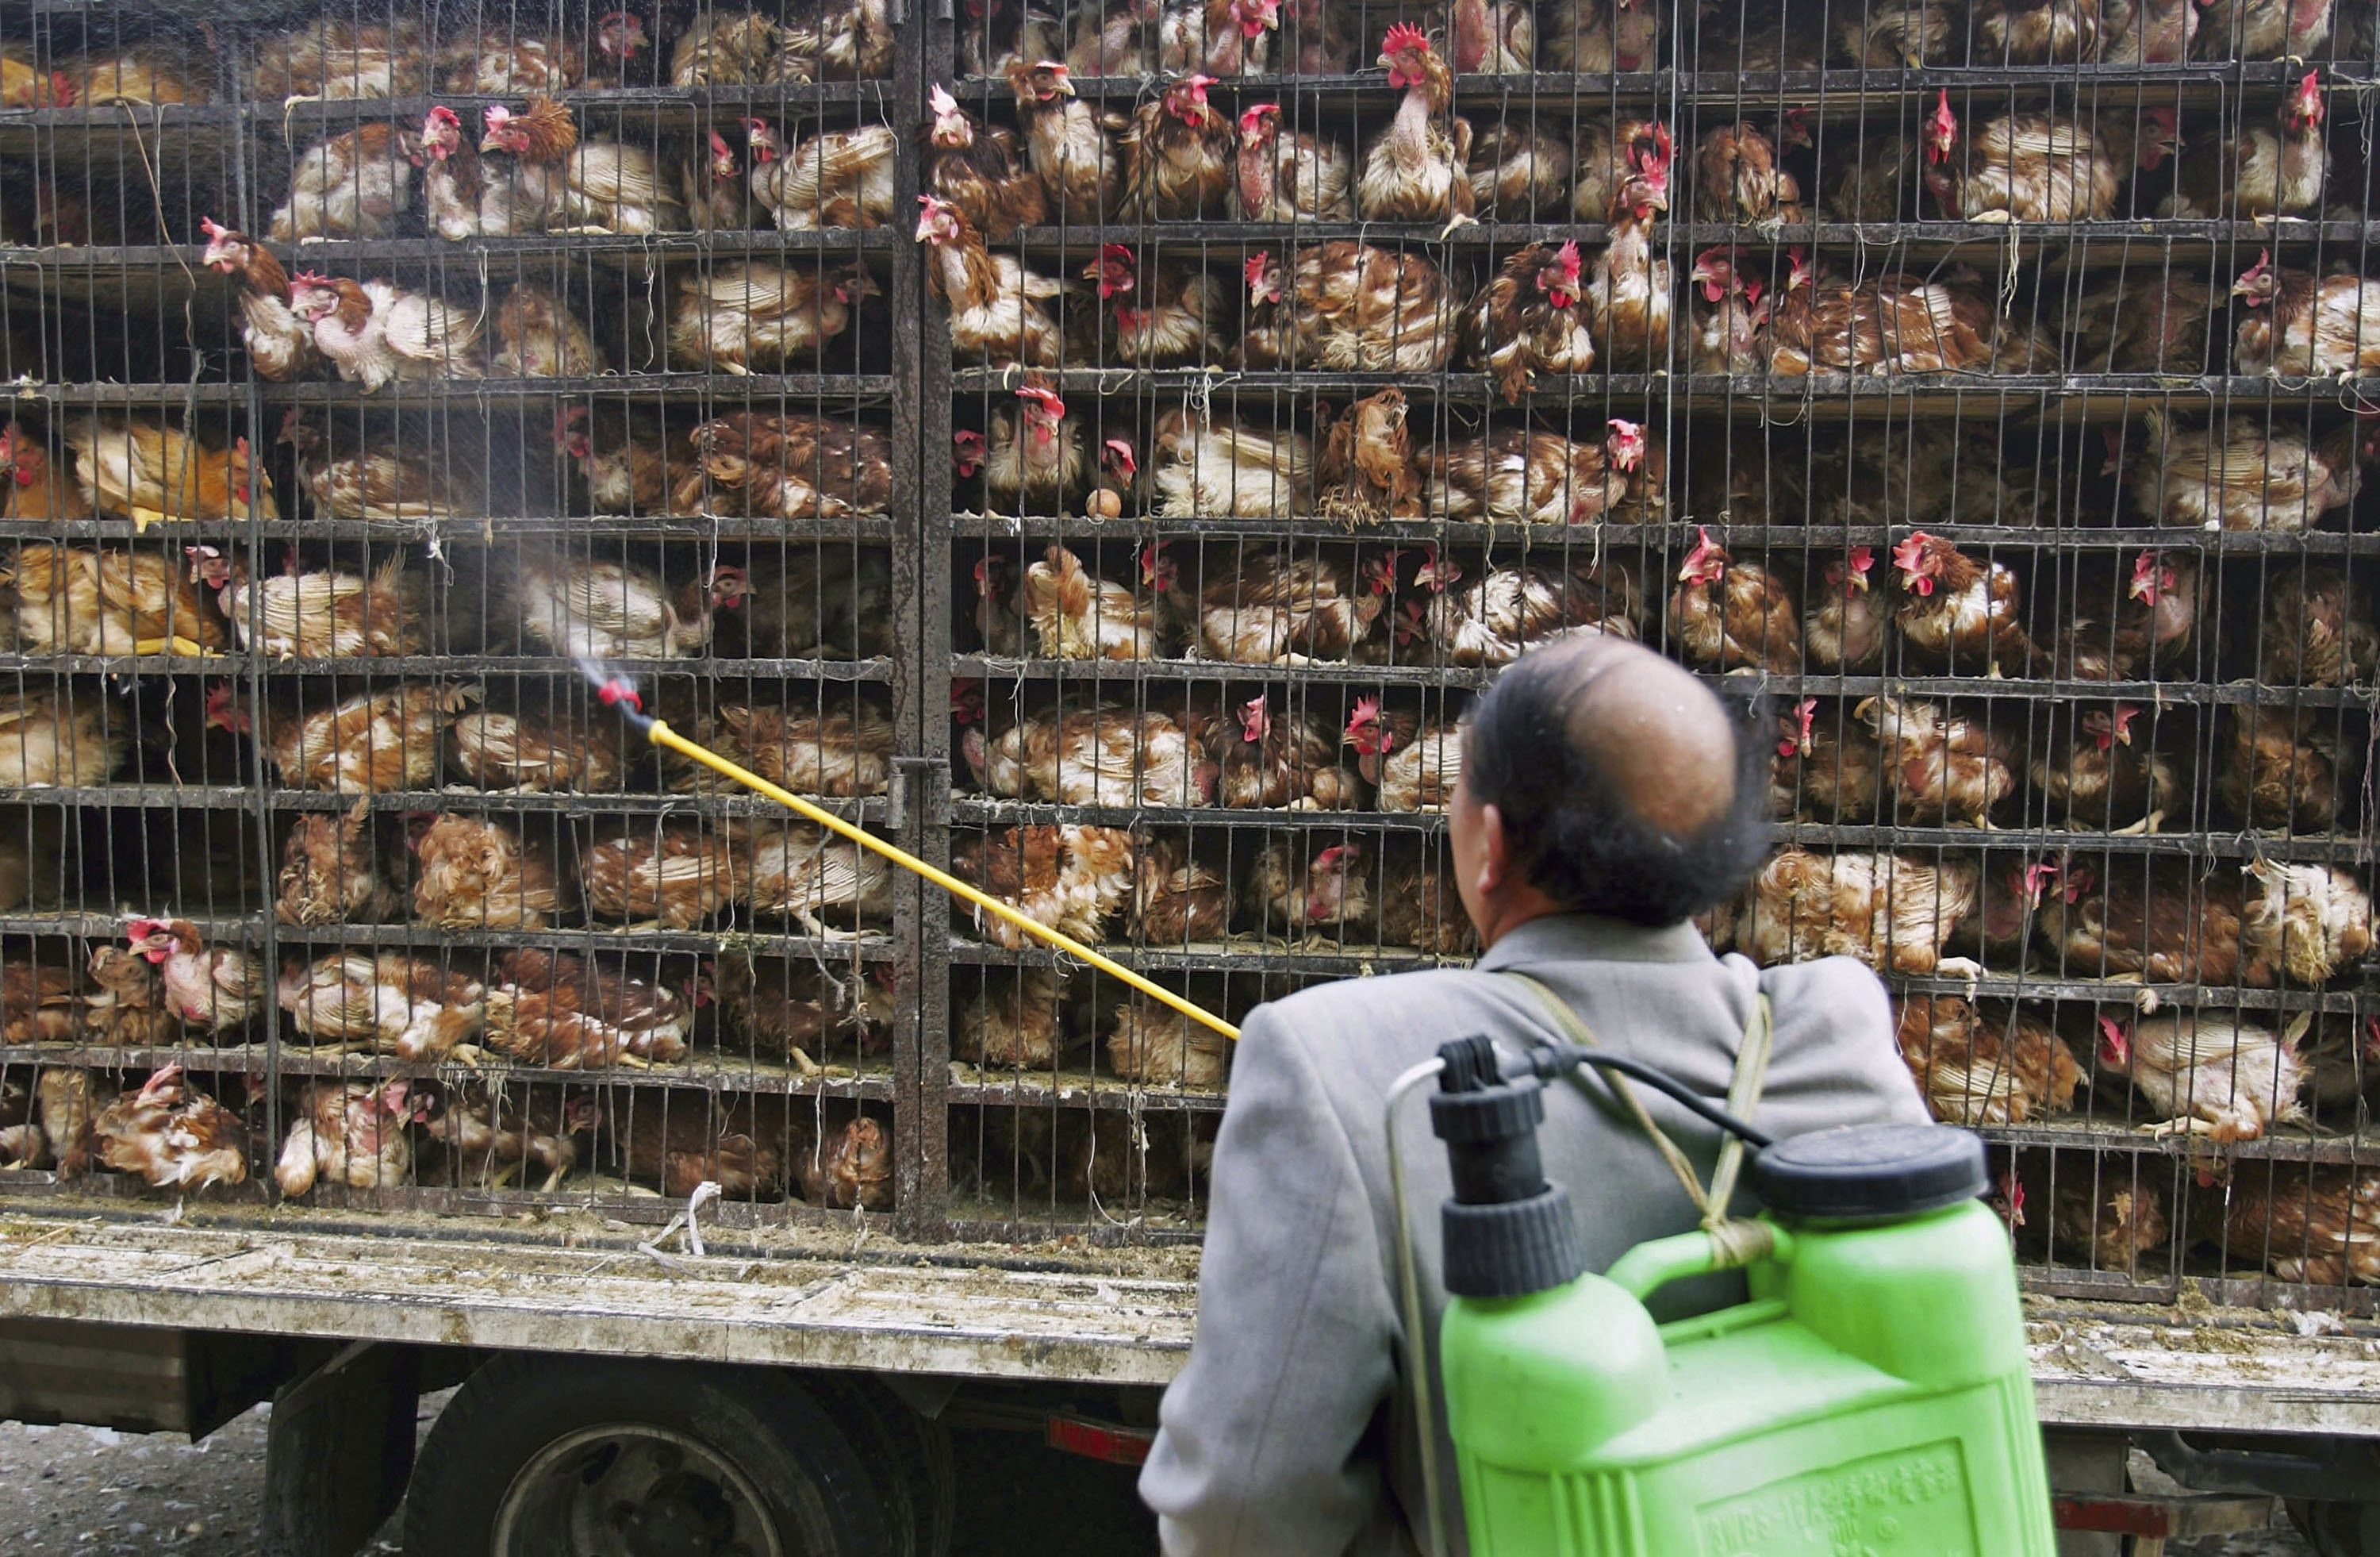 (A worker disinfects chickens transported to a chicken slaughtering factory, Photo: Getty Images)